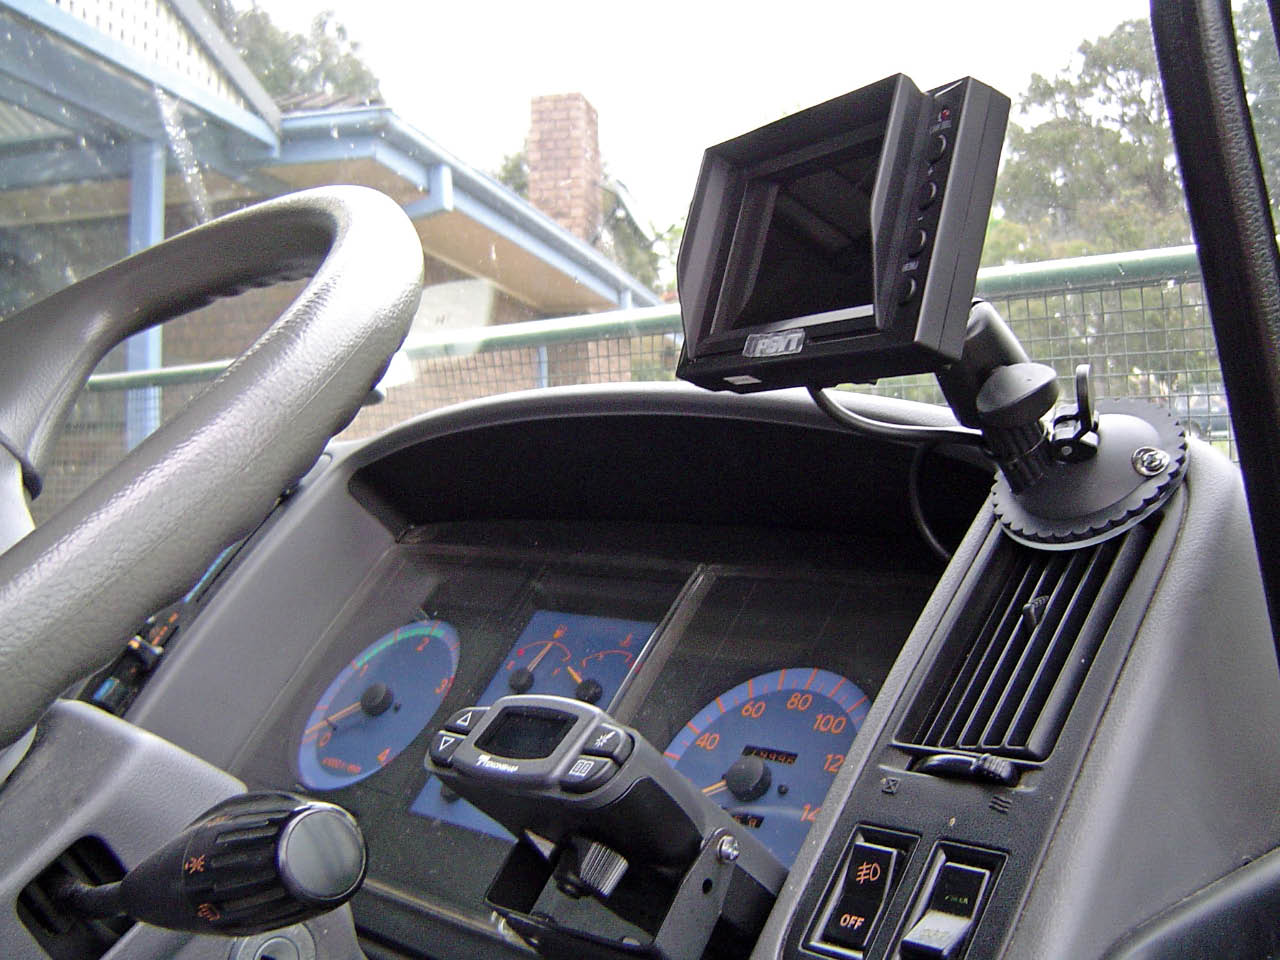 Top is camera monitor, lower is Brake Controller.